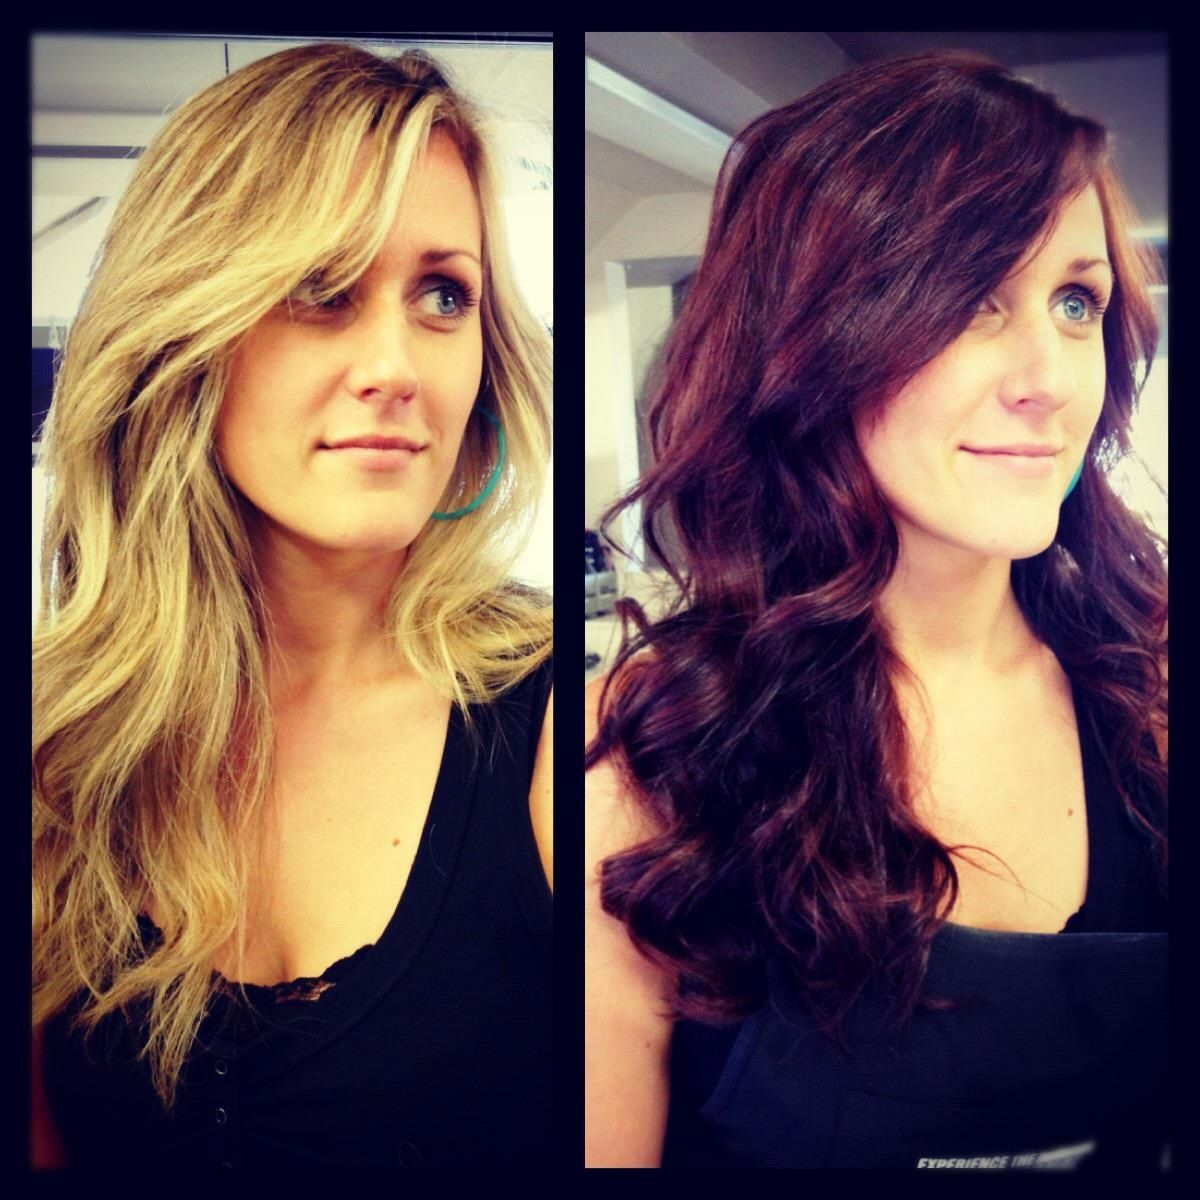 Before and after! @brecynsalon by: Emily